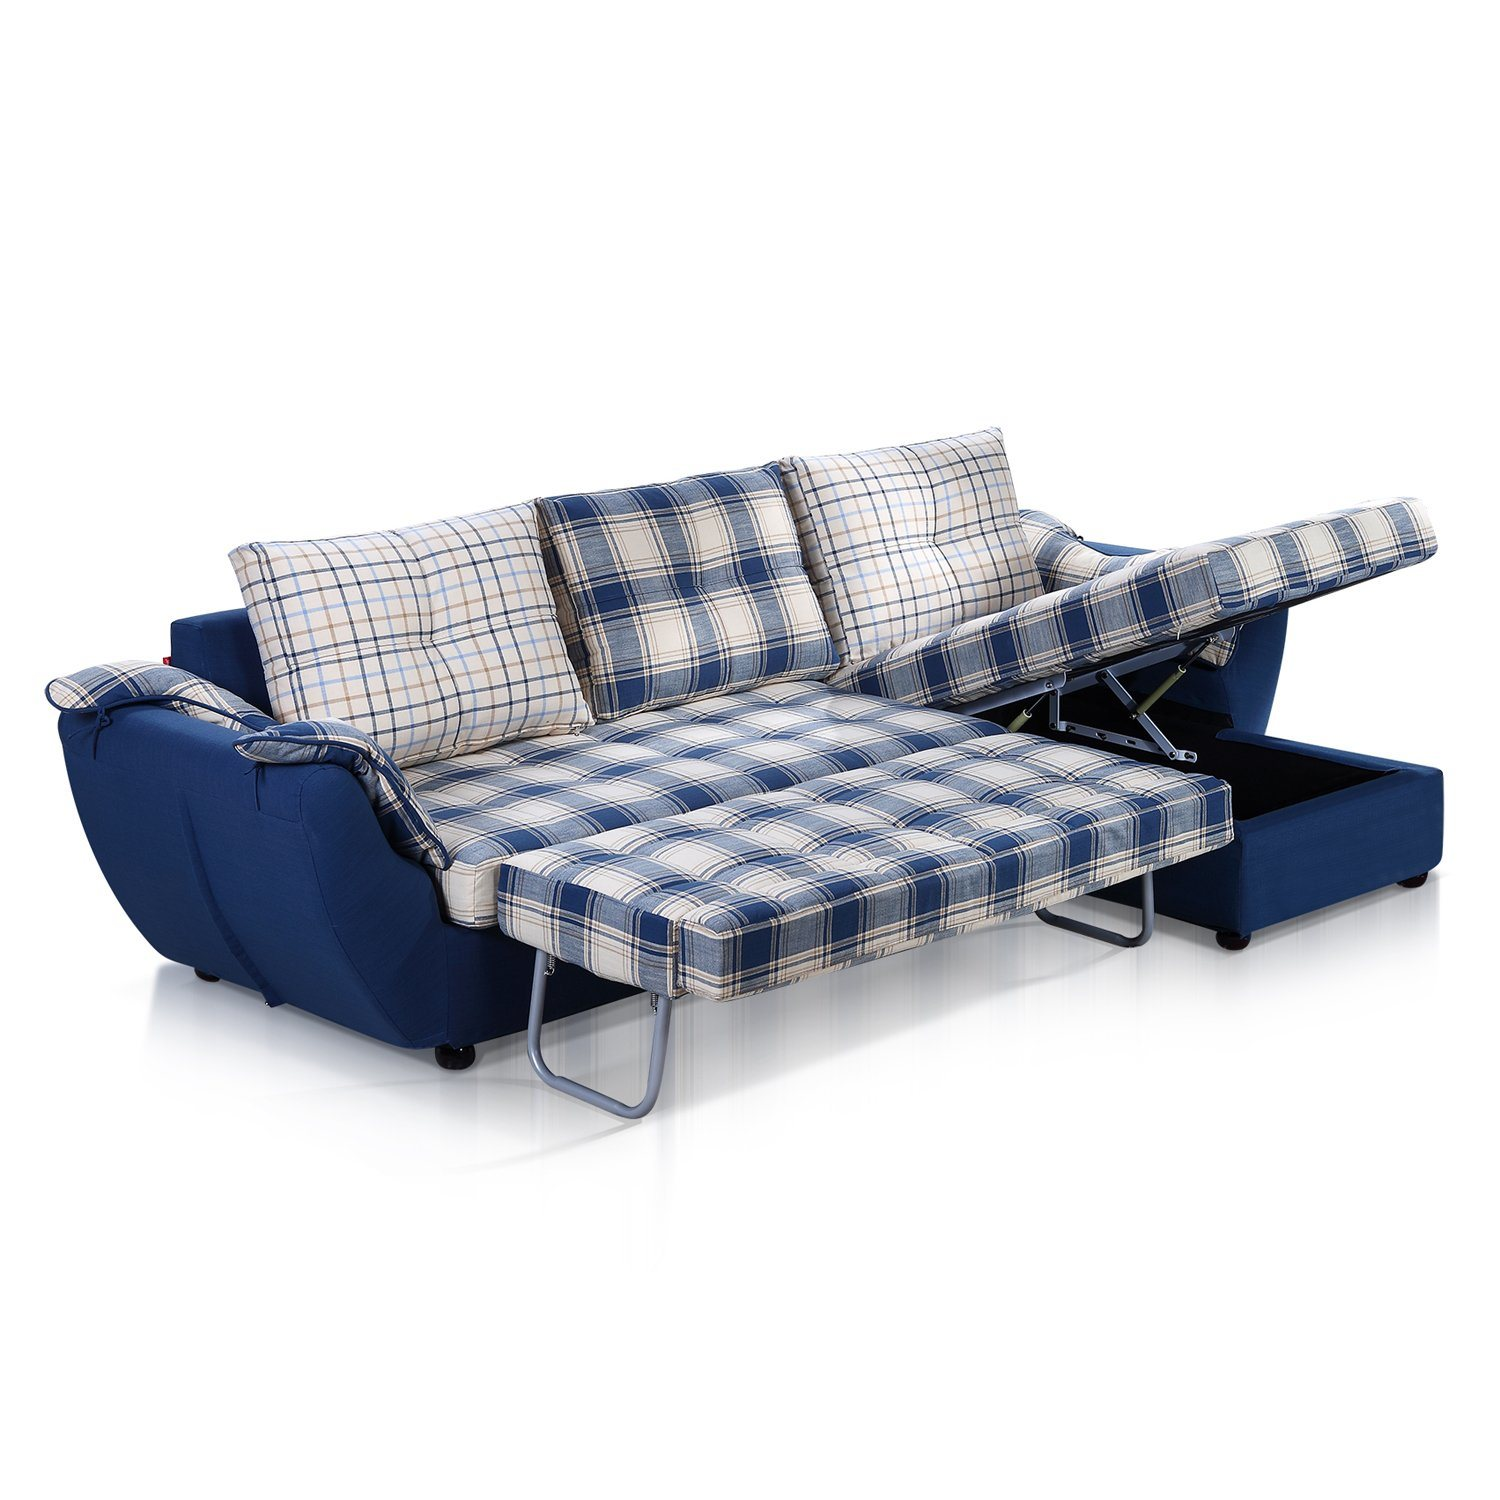 China Multi Function L Shaped Sofa Bed with Big Storage China